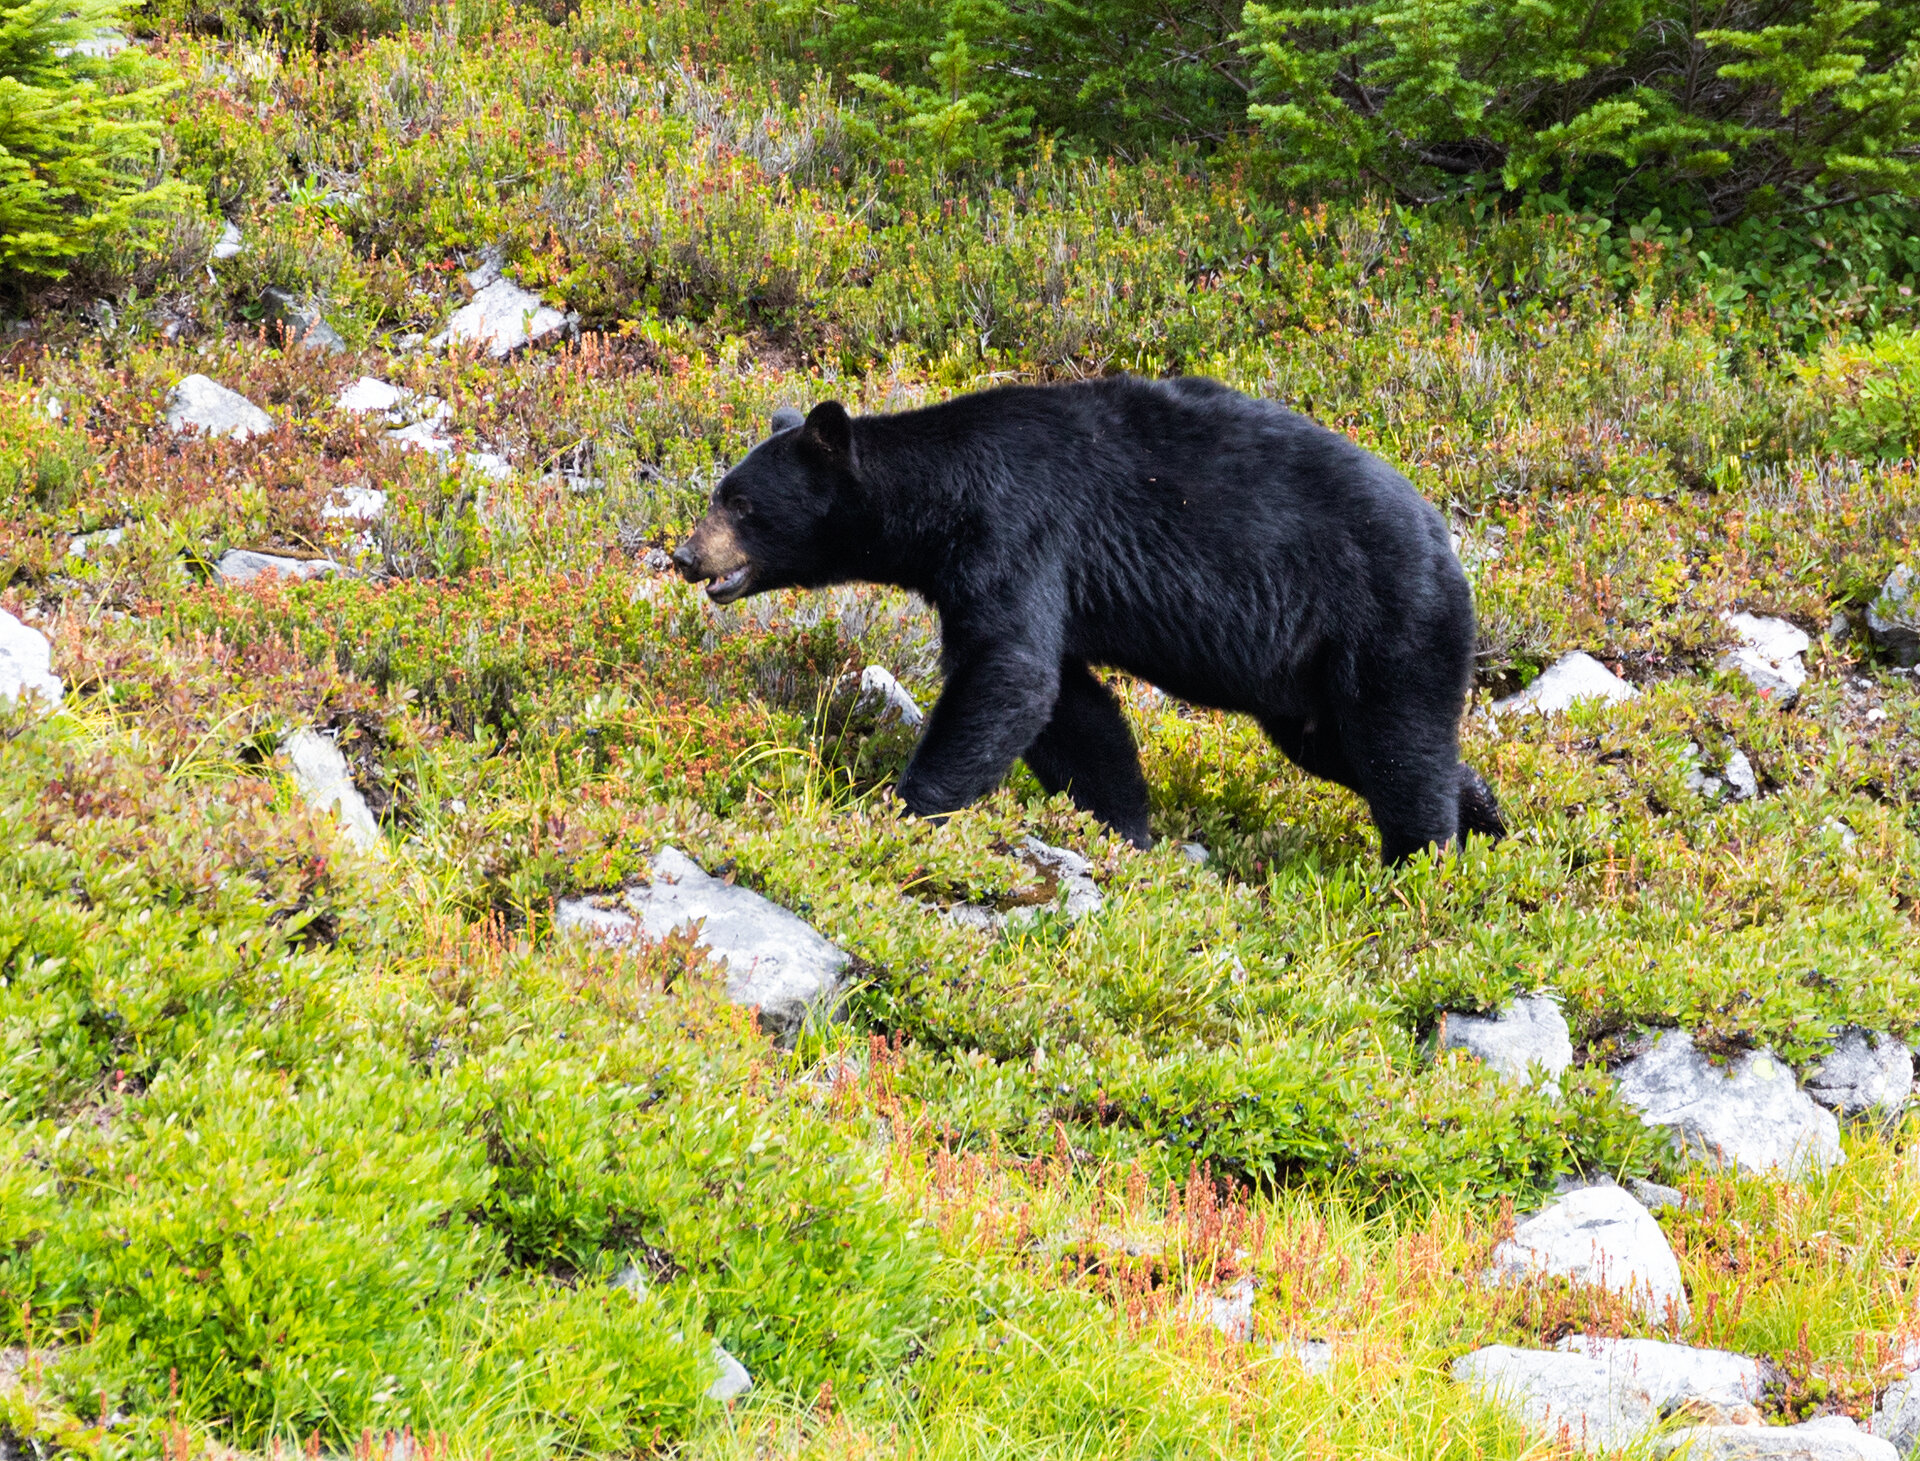 The bear moving from berry bush to berry bush